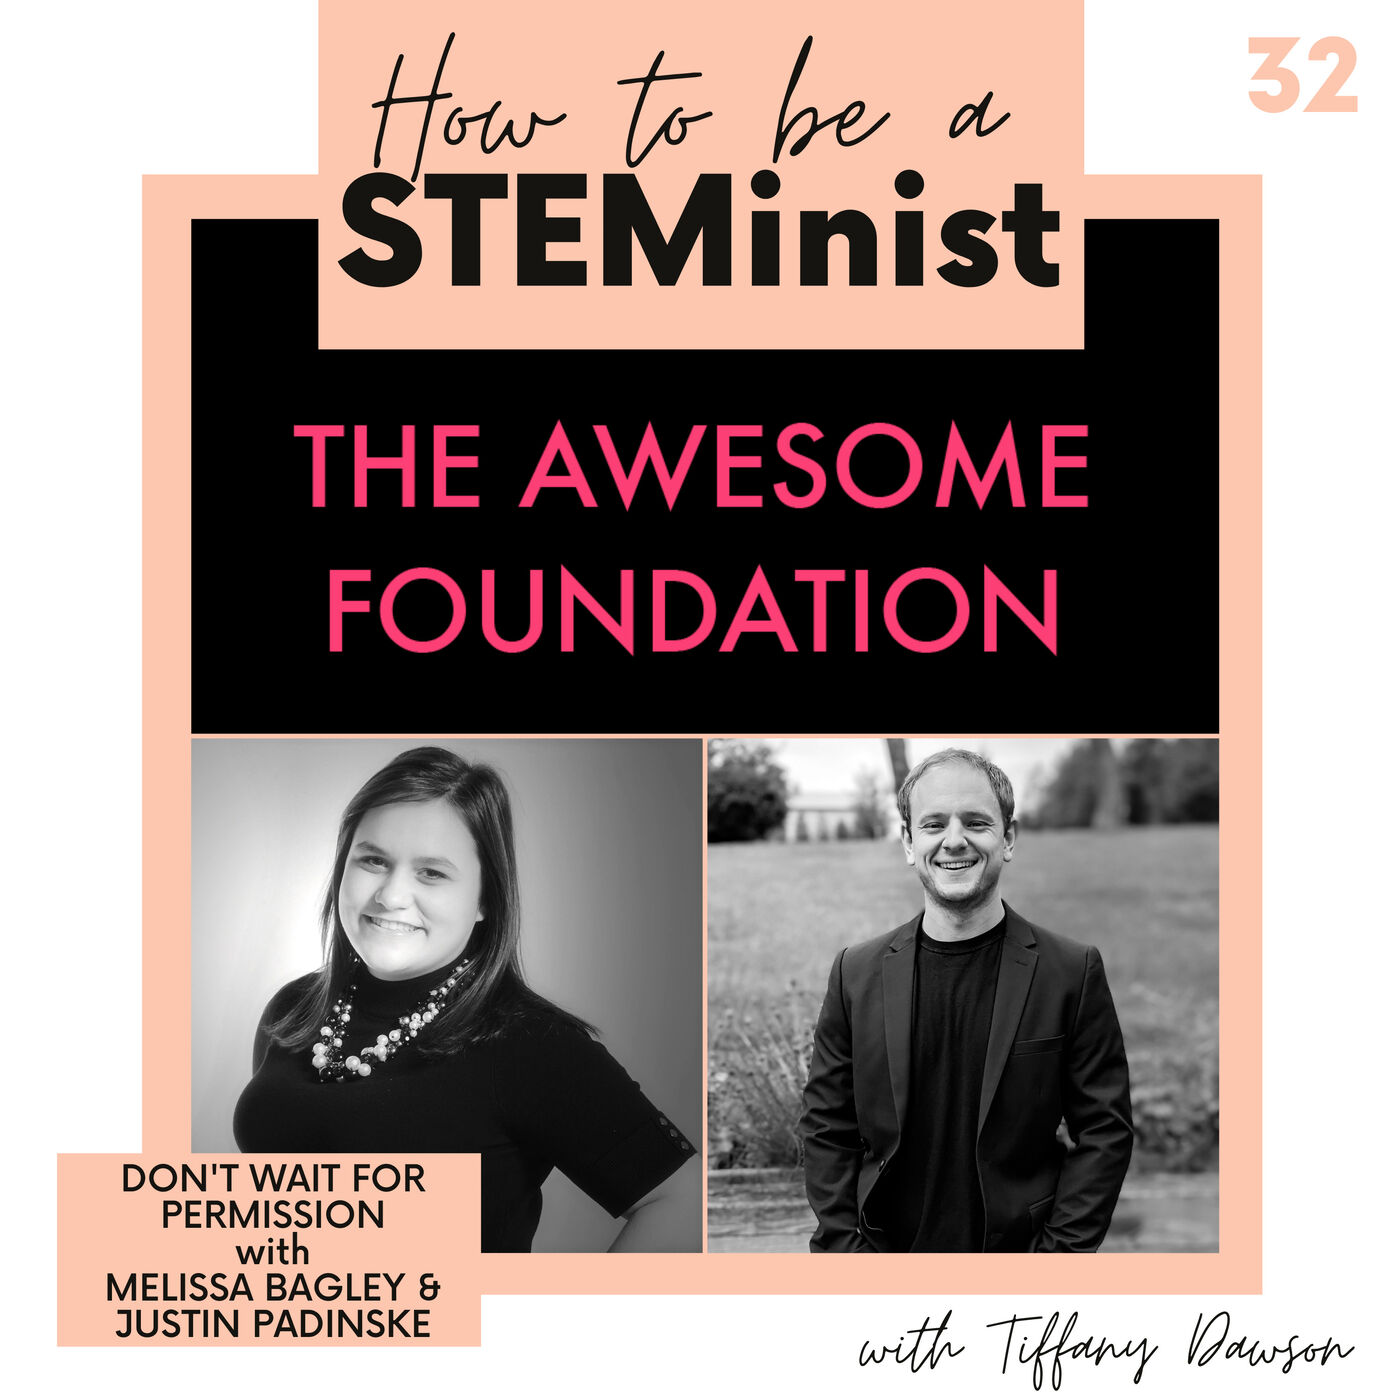 32. Don't Wait For Permission with Melissa Bagley & Justin Padinske